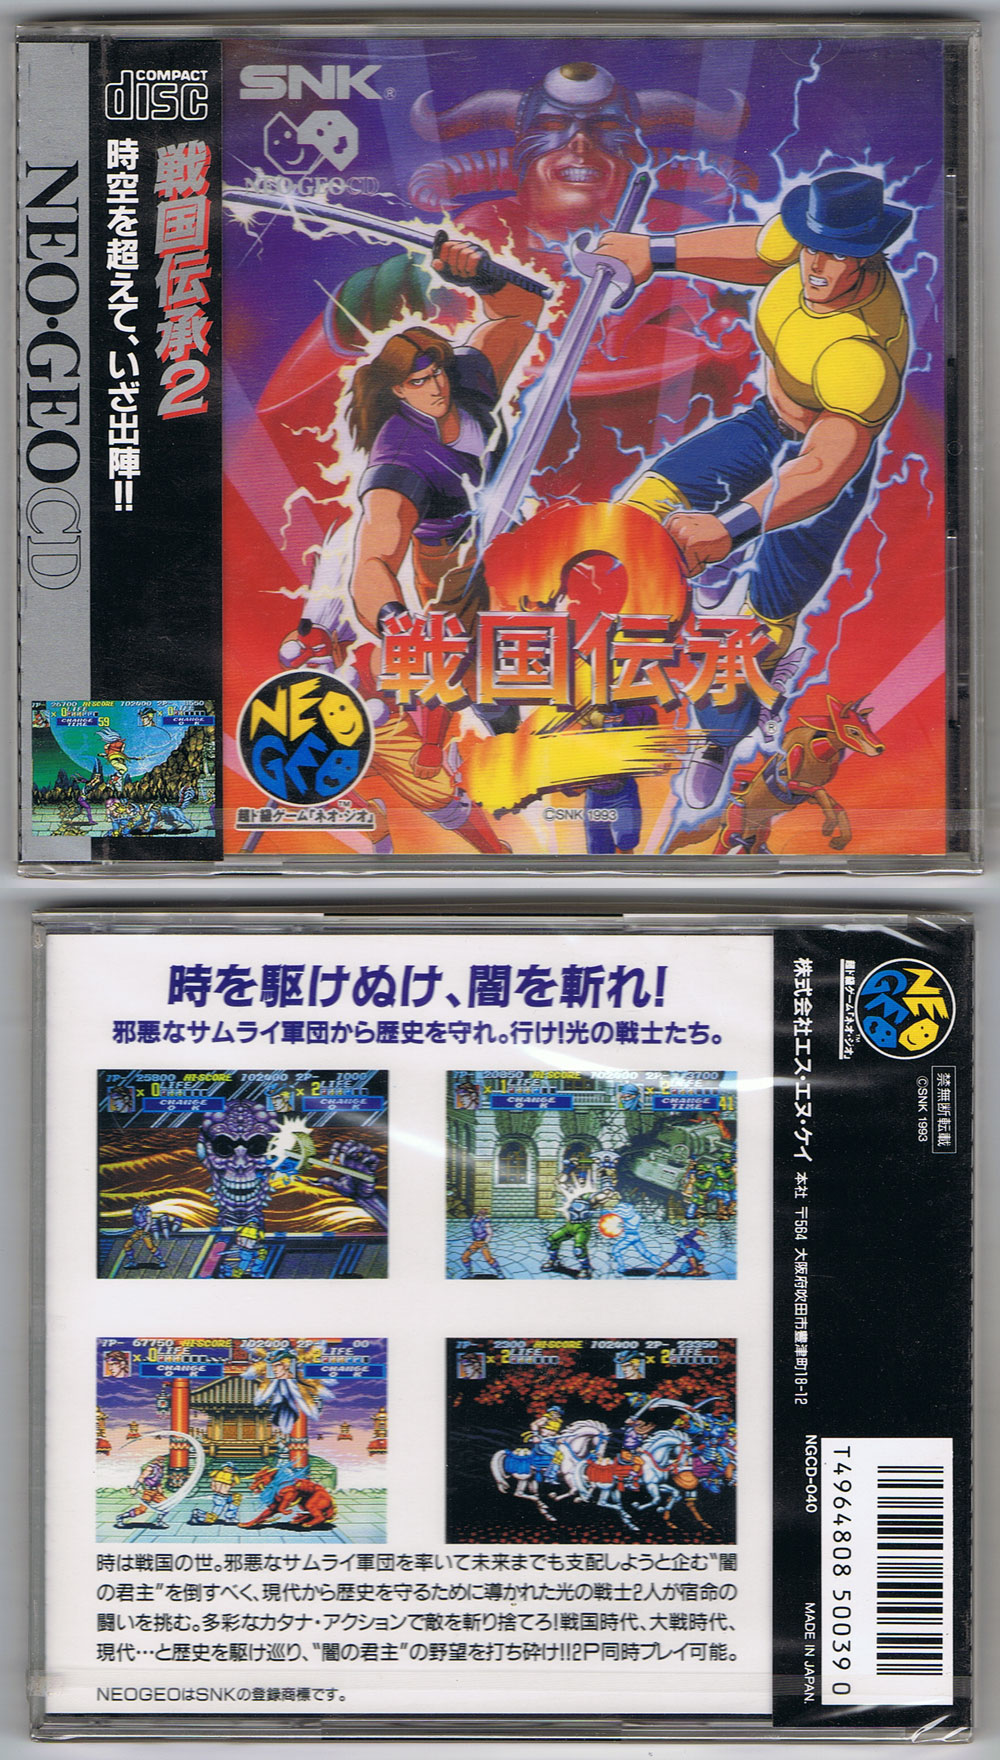 Sengoku 2 (New) from SNK - Neo-Geo CD